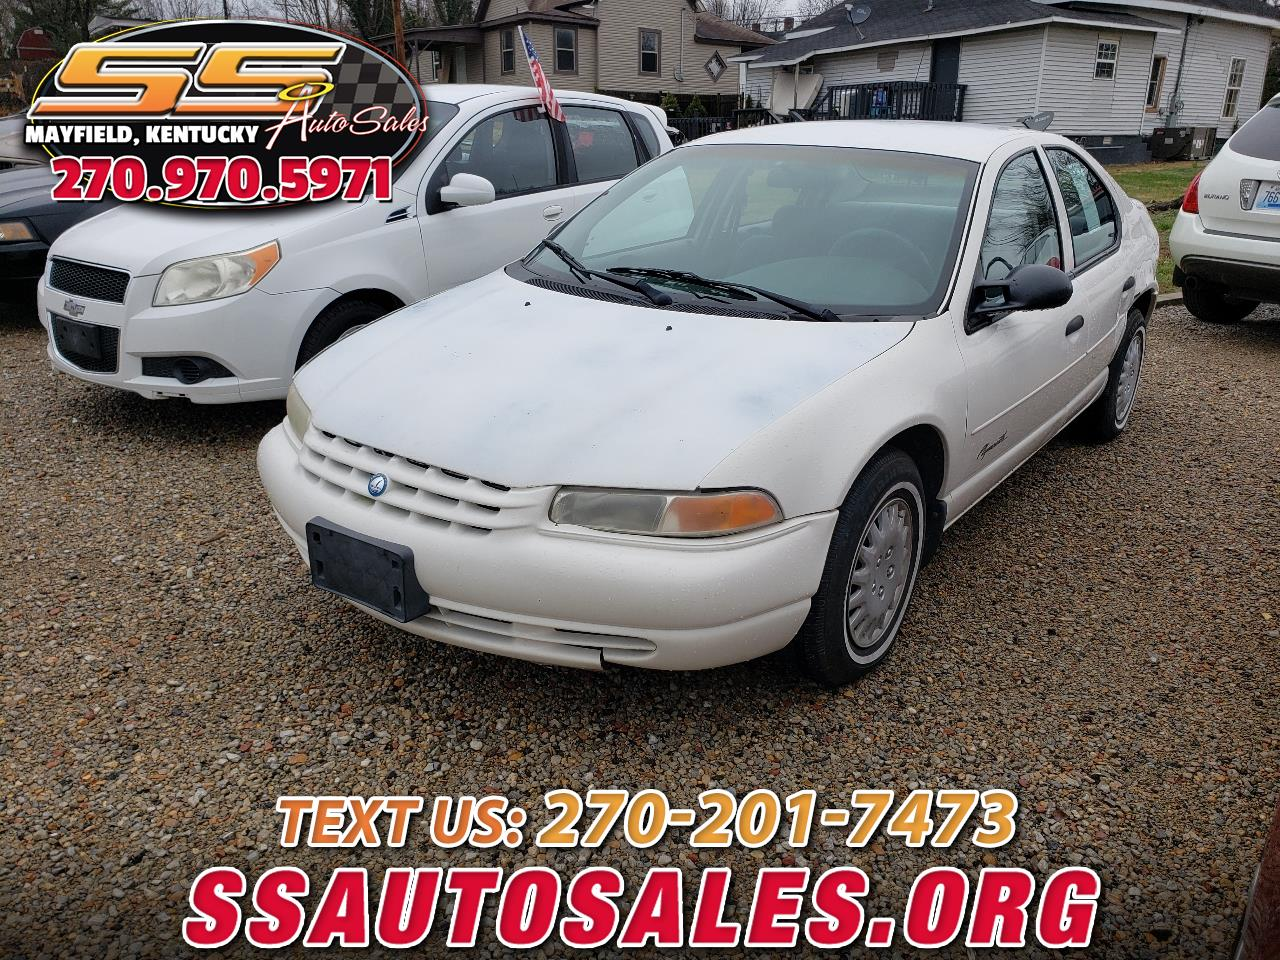 1998 Plymouth Breeze 4dr Sdn